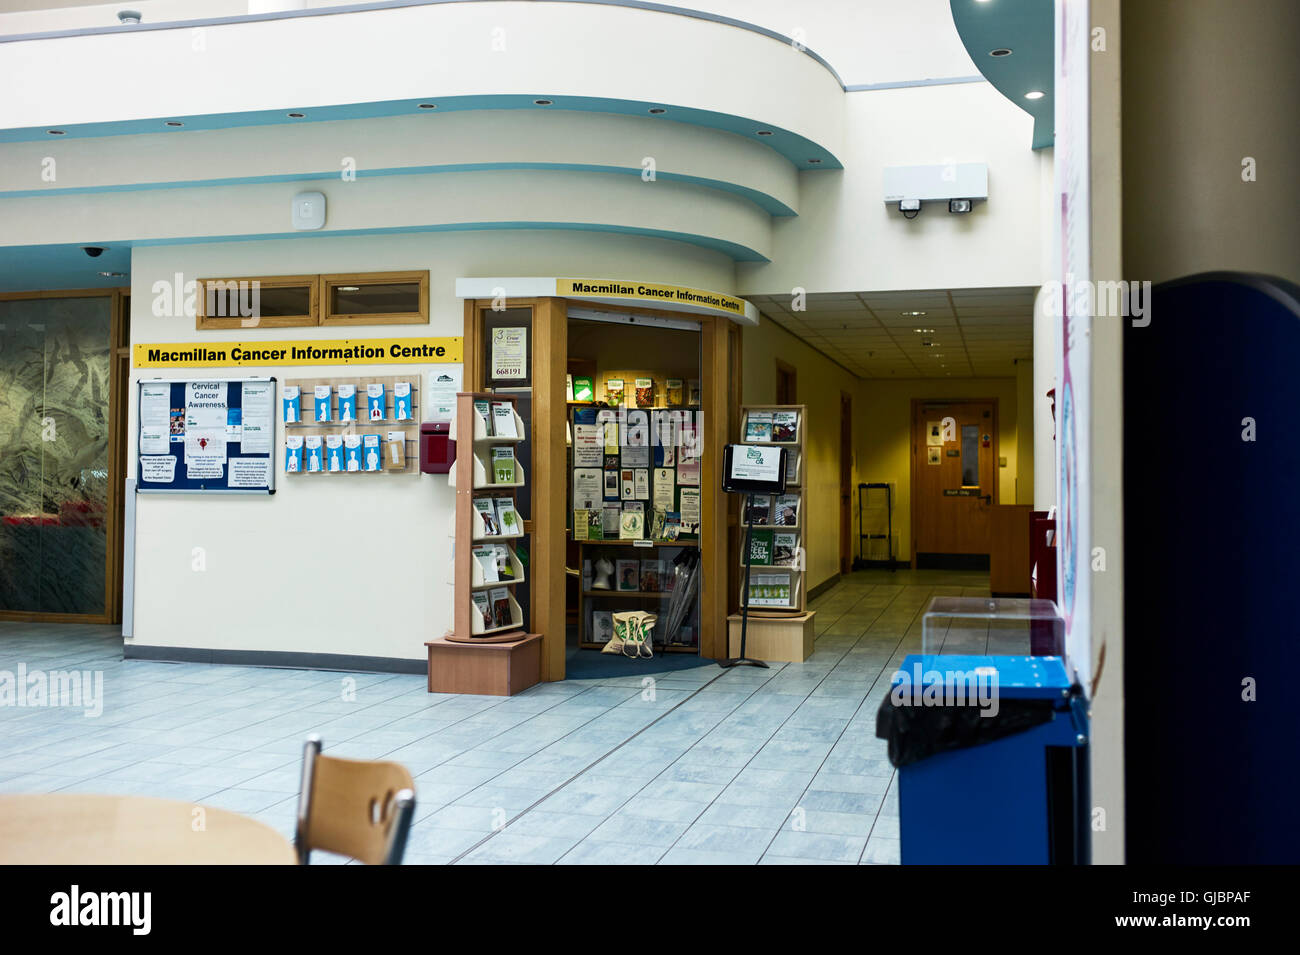 Macmillan cancer information centre in a hospital - Stock Image